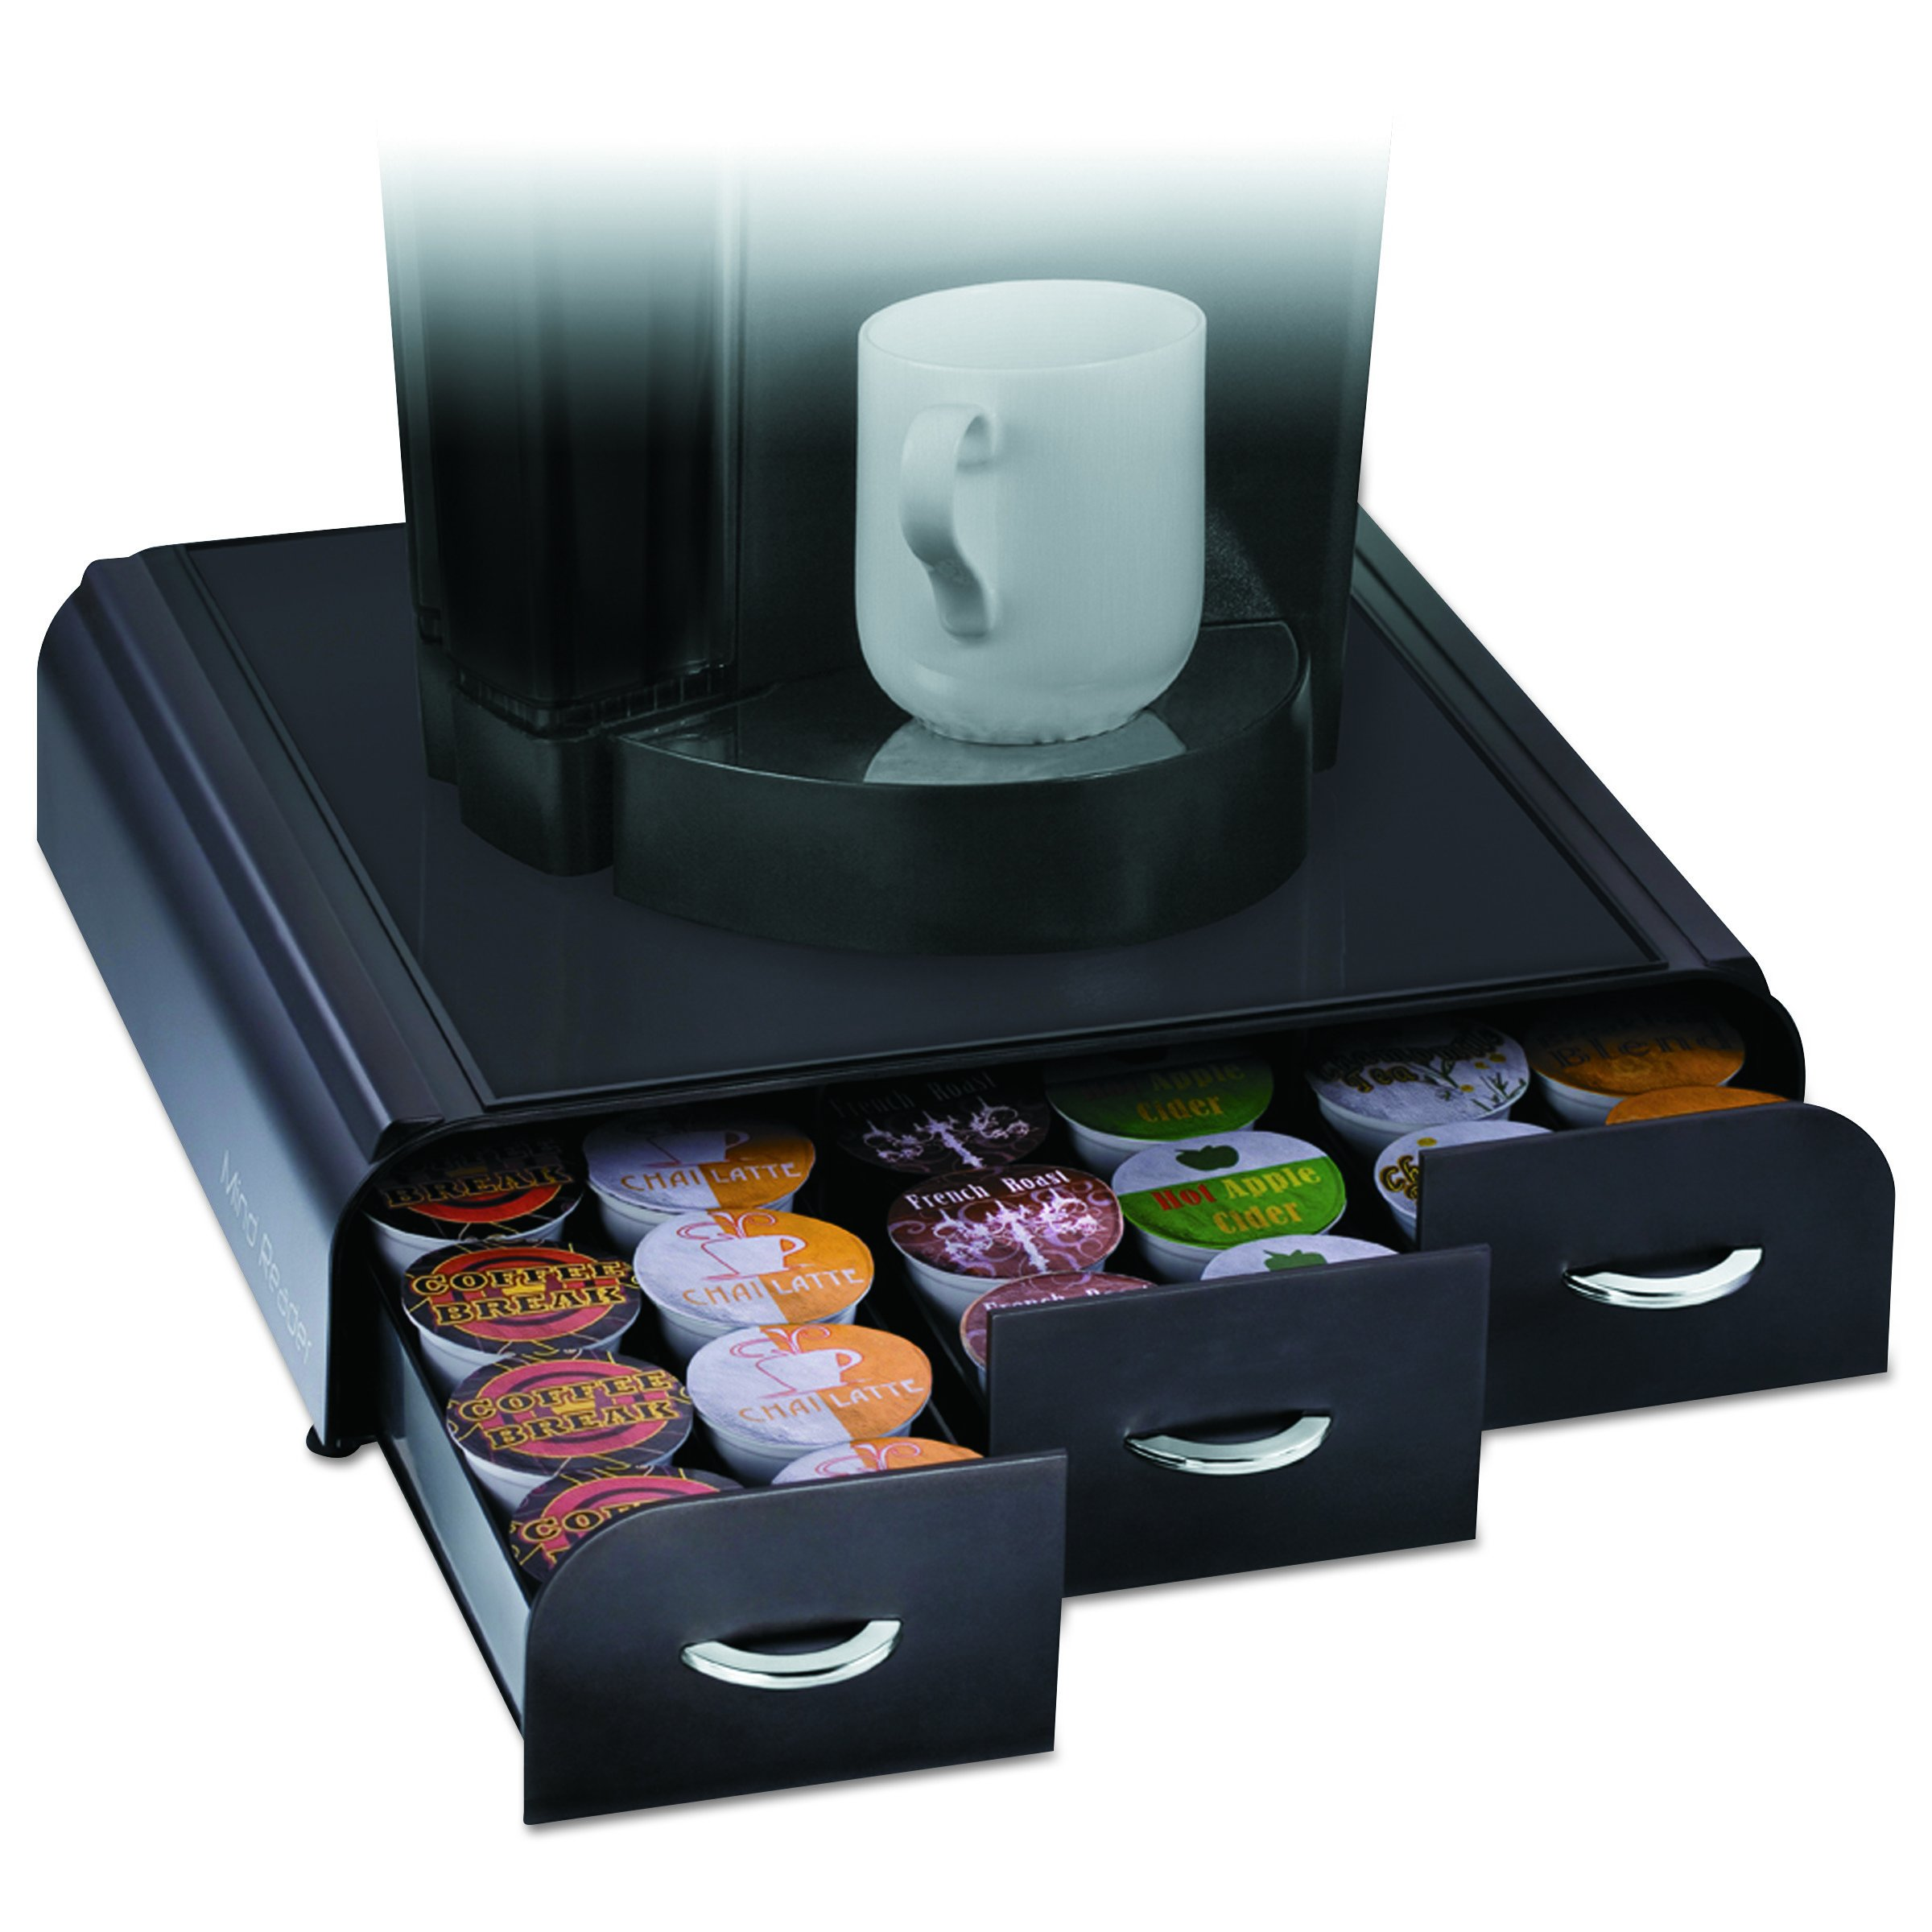 Mind Reader 'Anchor' Triple Drawer K-Cup Dolce Gusto, CBTL, Verismo Single Serve Coffee Pod Holder, Black by Mind Reader (Image #1)